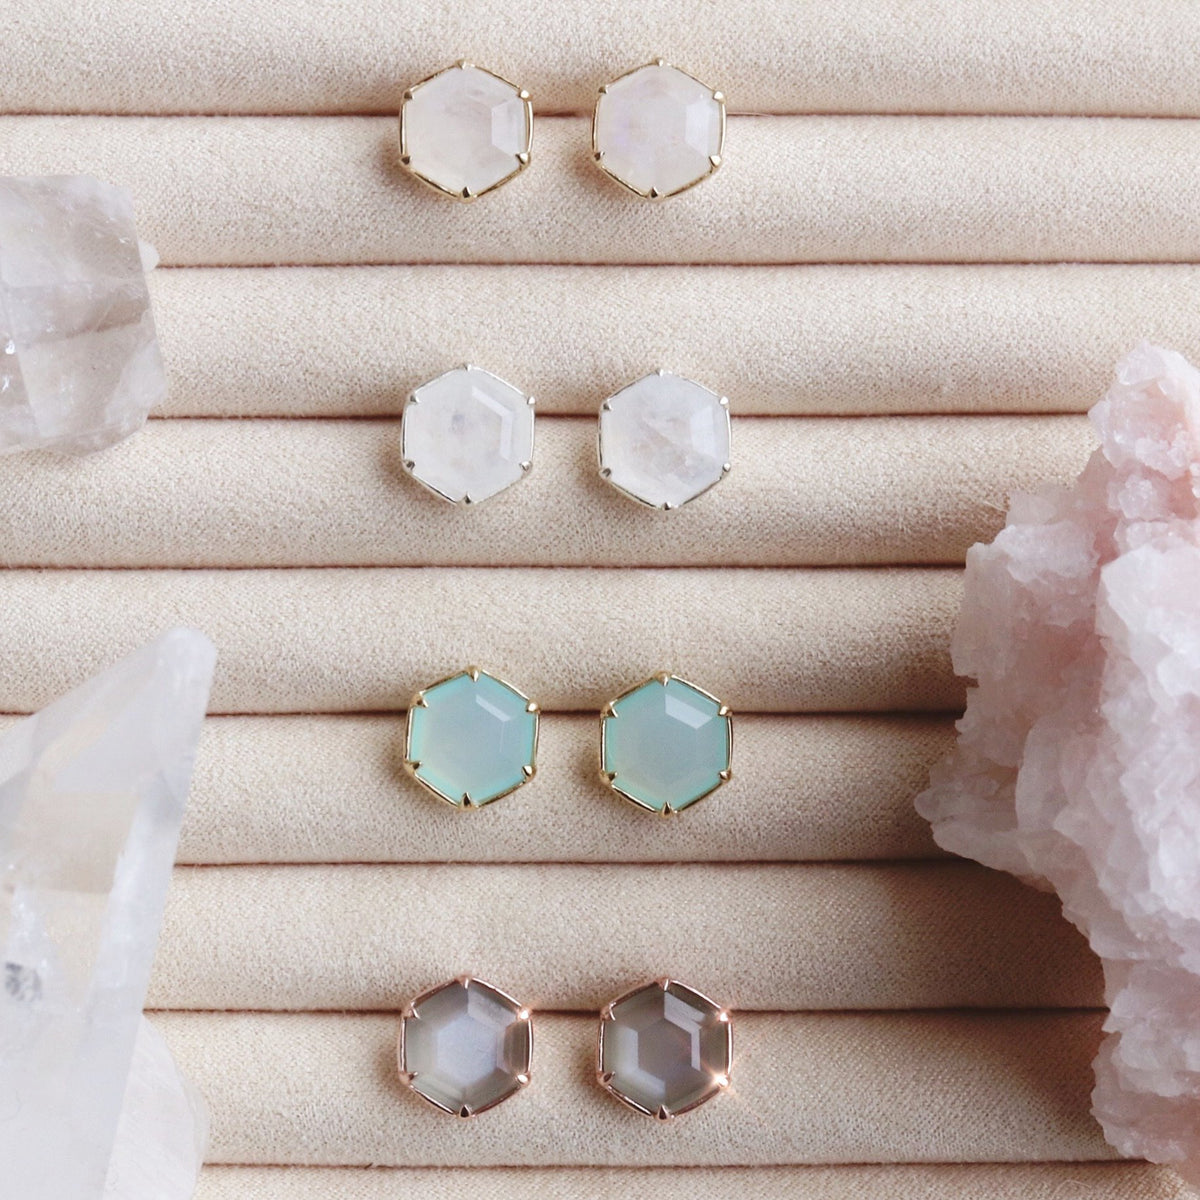 GRACE HEXAGON STUD EARRINGS - GREY MOONSTONE & ROSE GOLD - SO PRETTY CARA COTTER